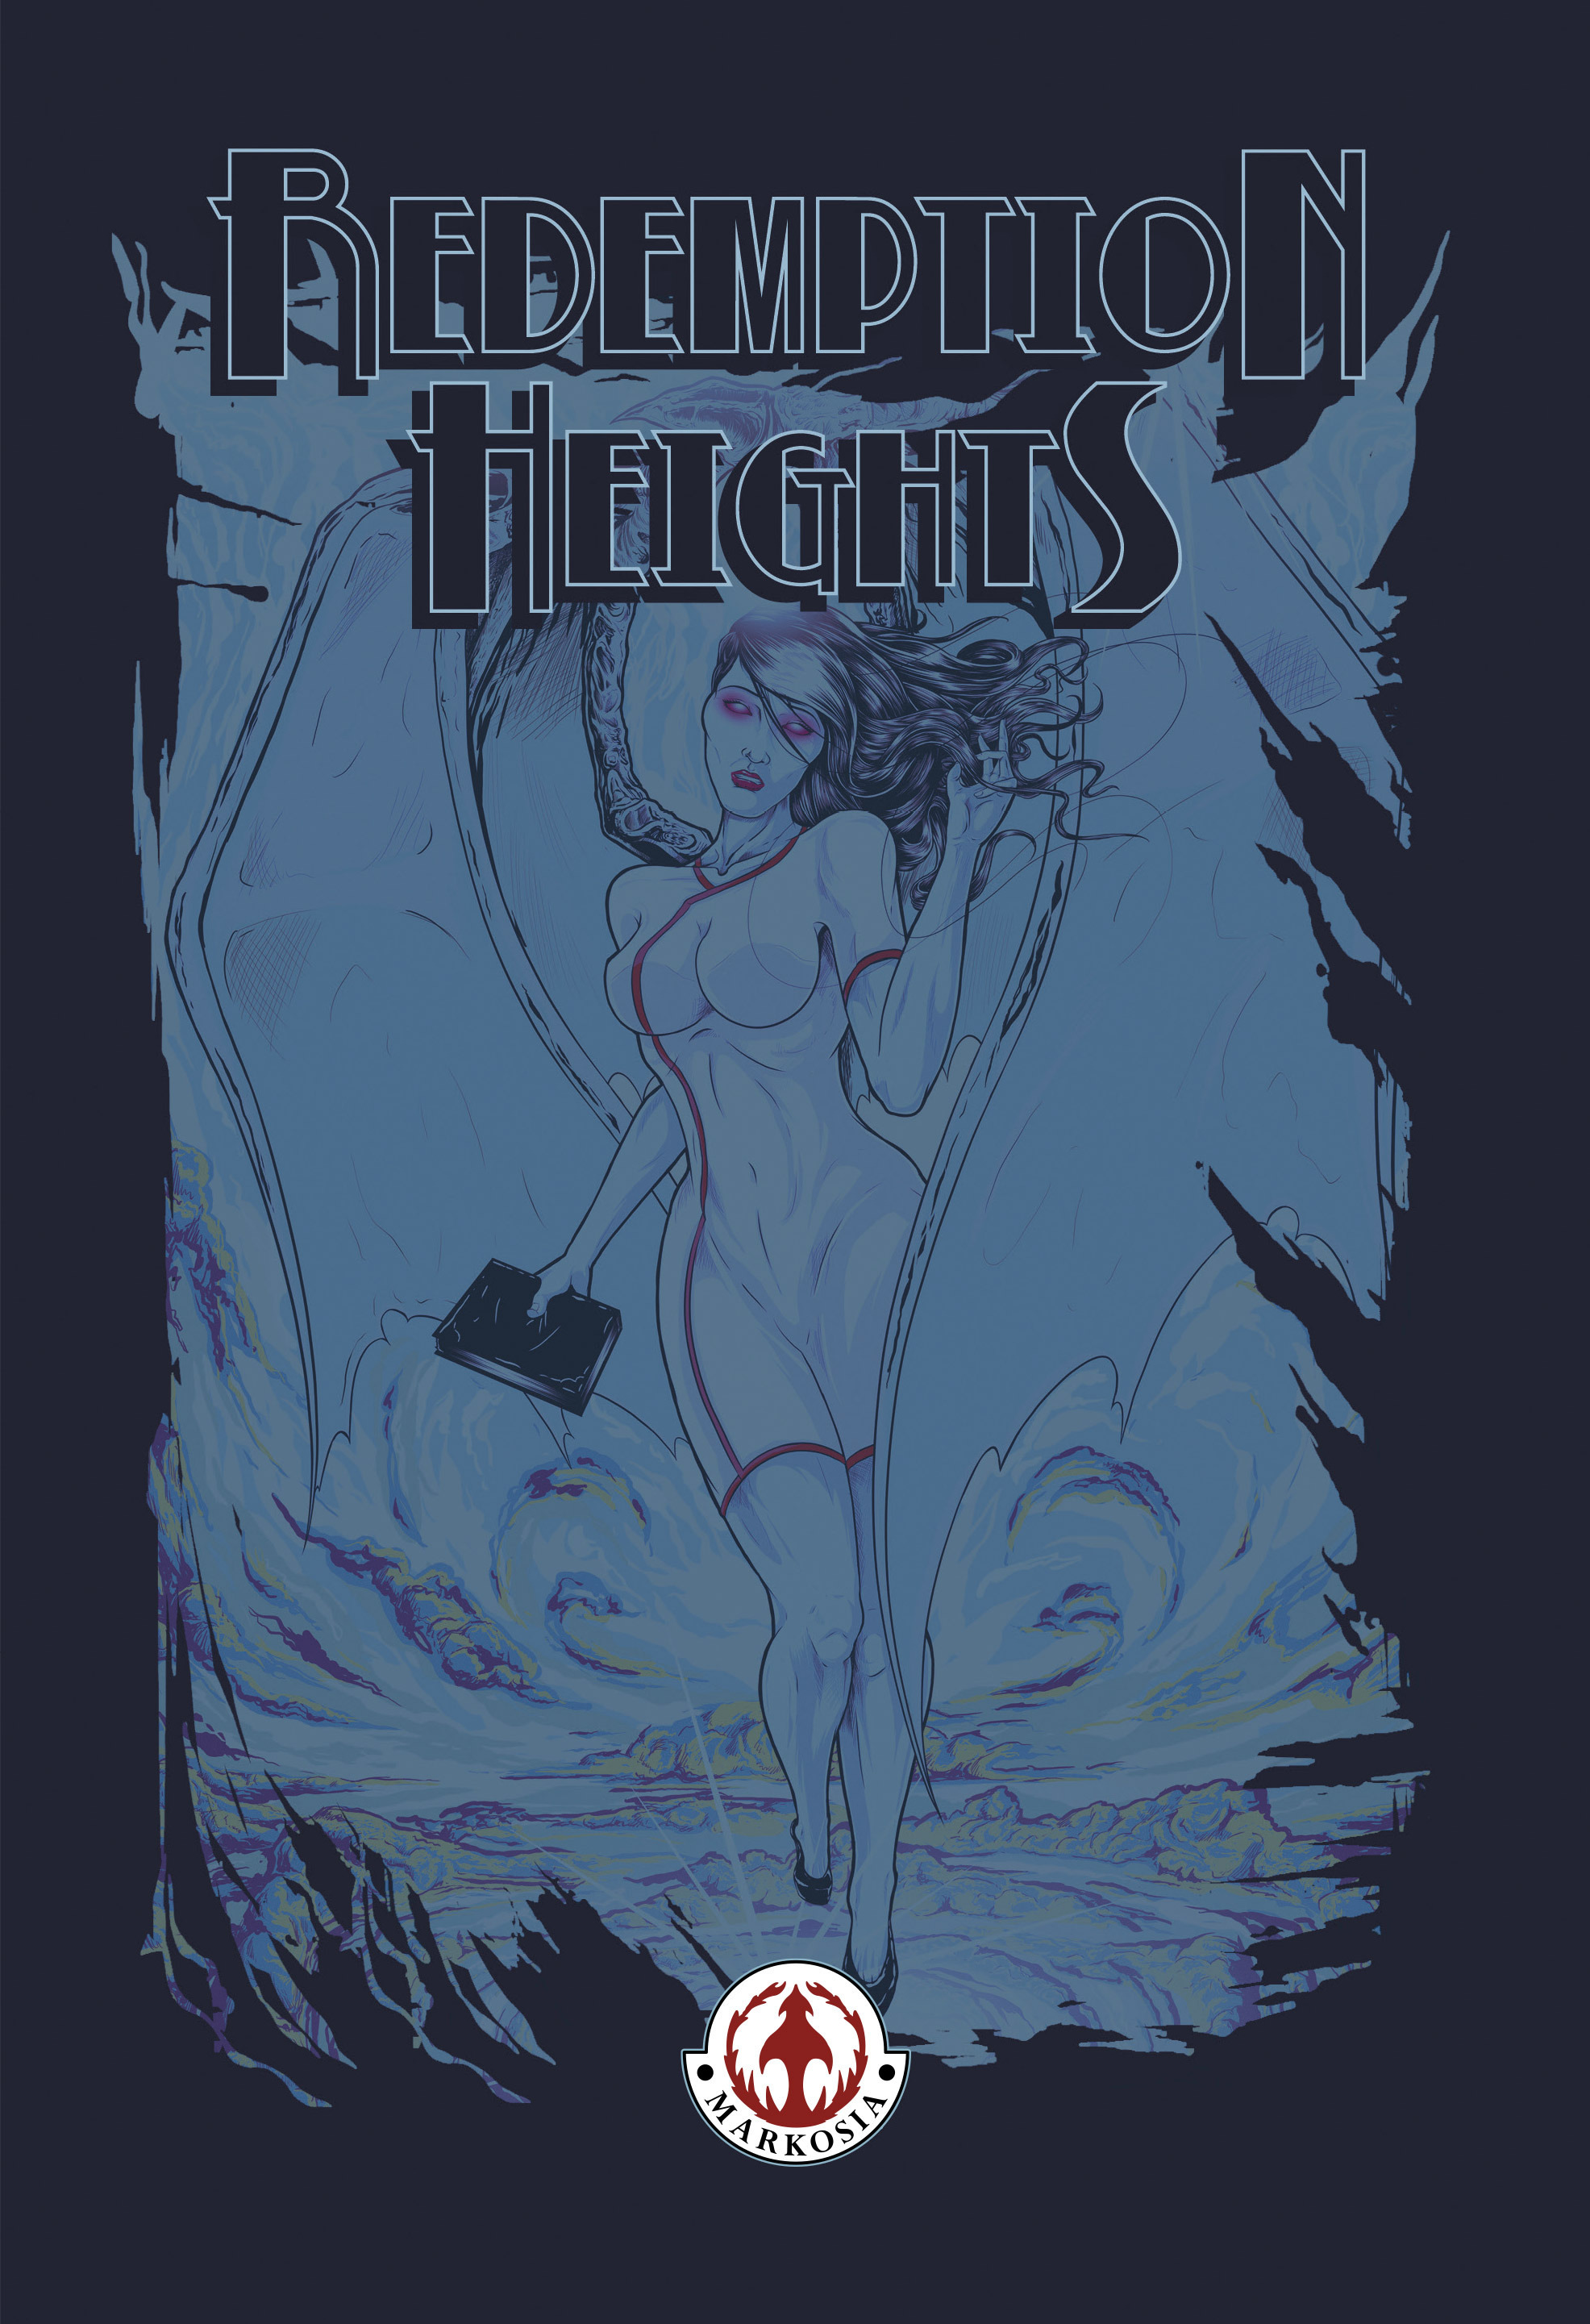 Read online Redemption Heights comic -  Issue # Full - 2